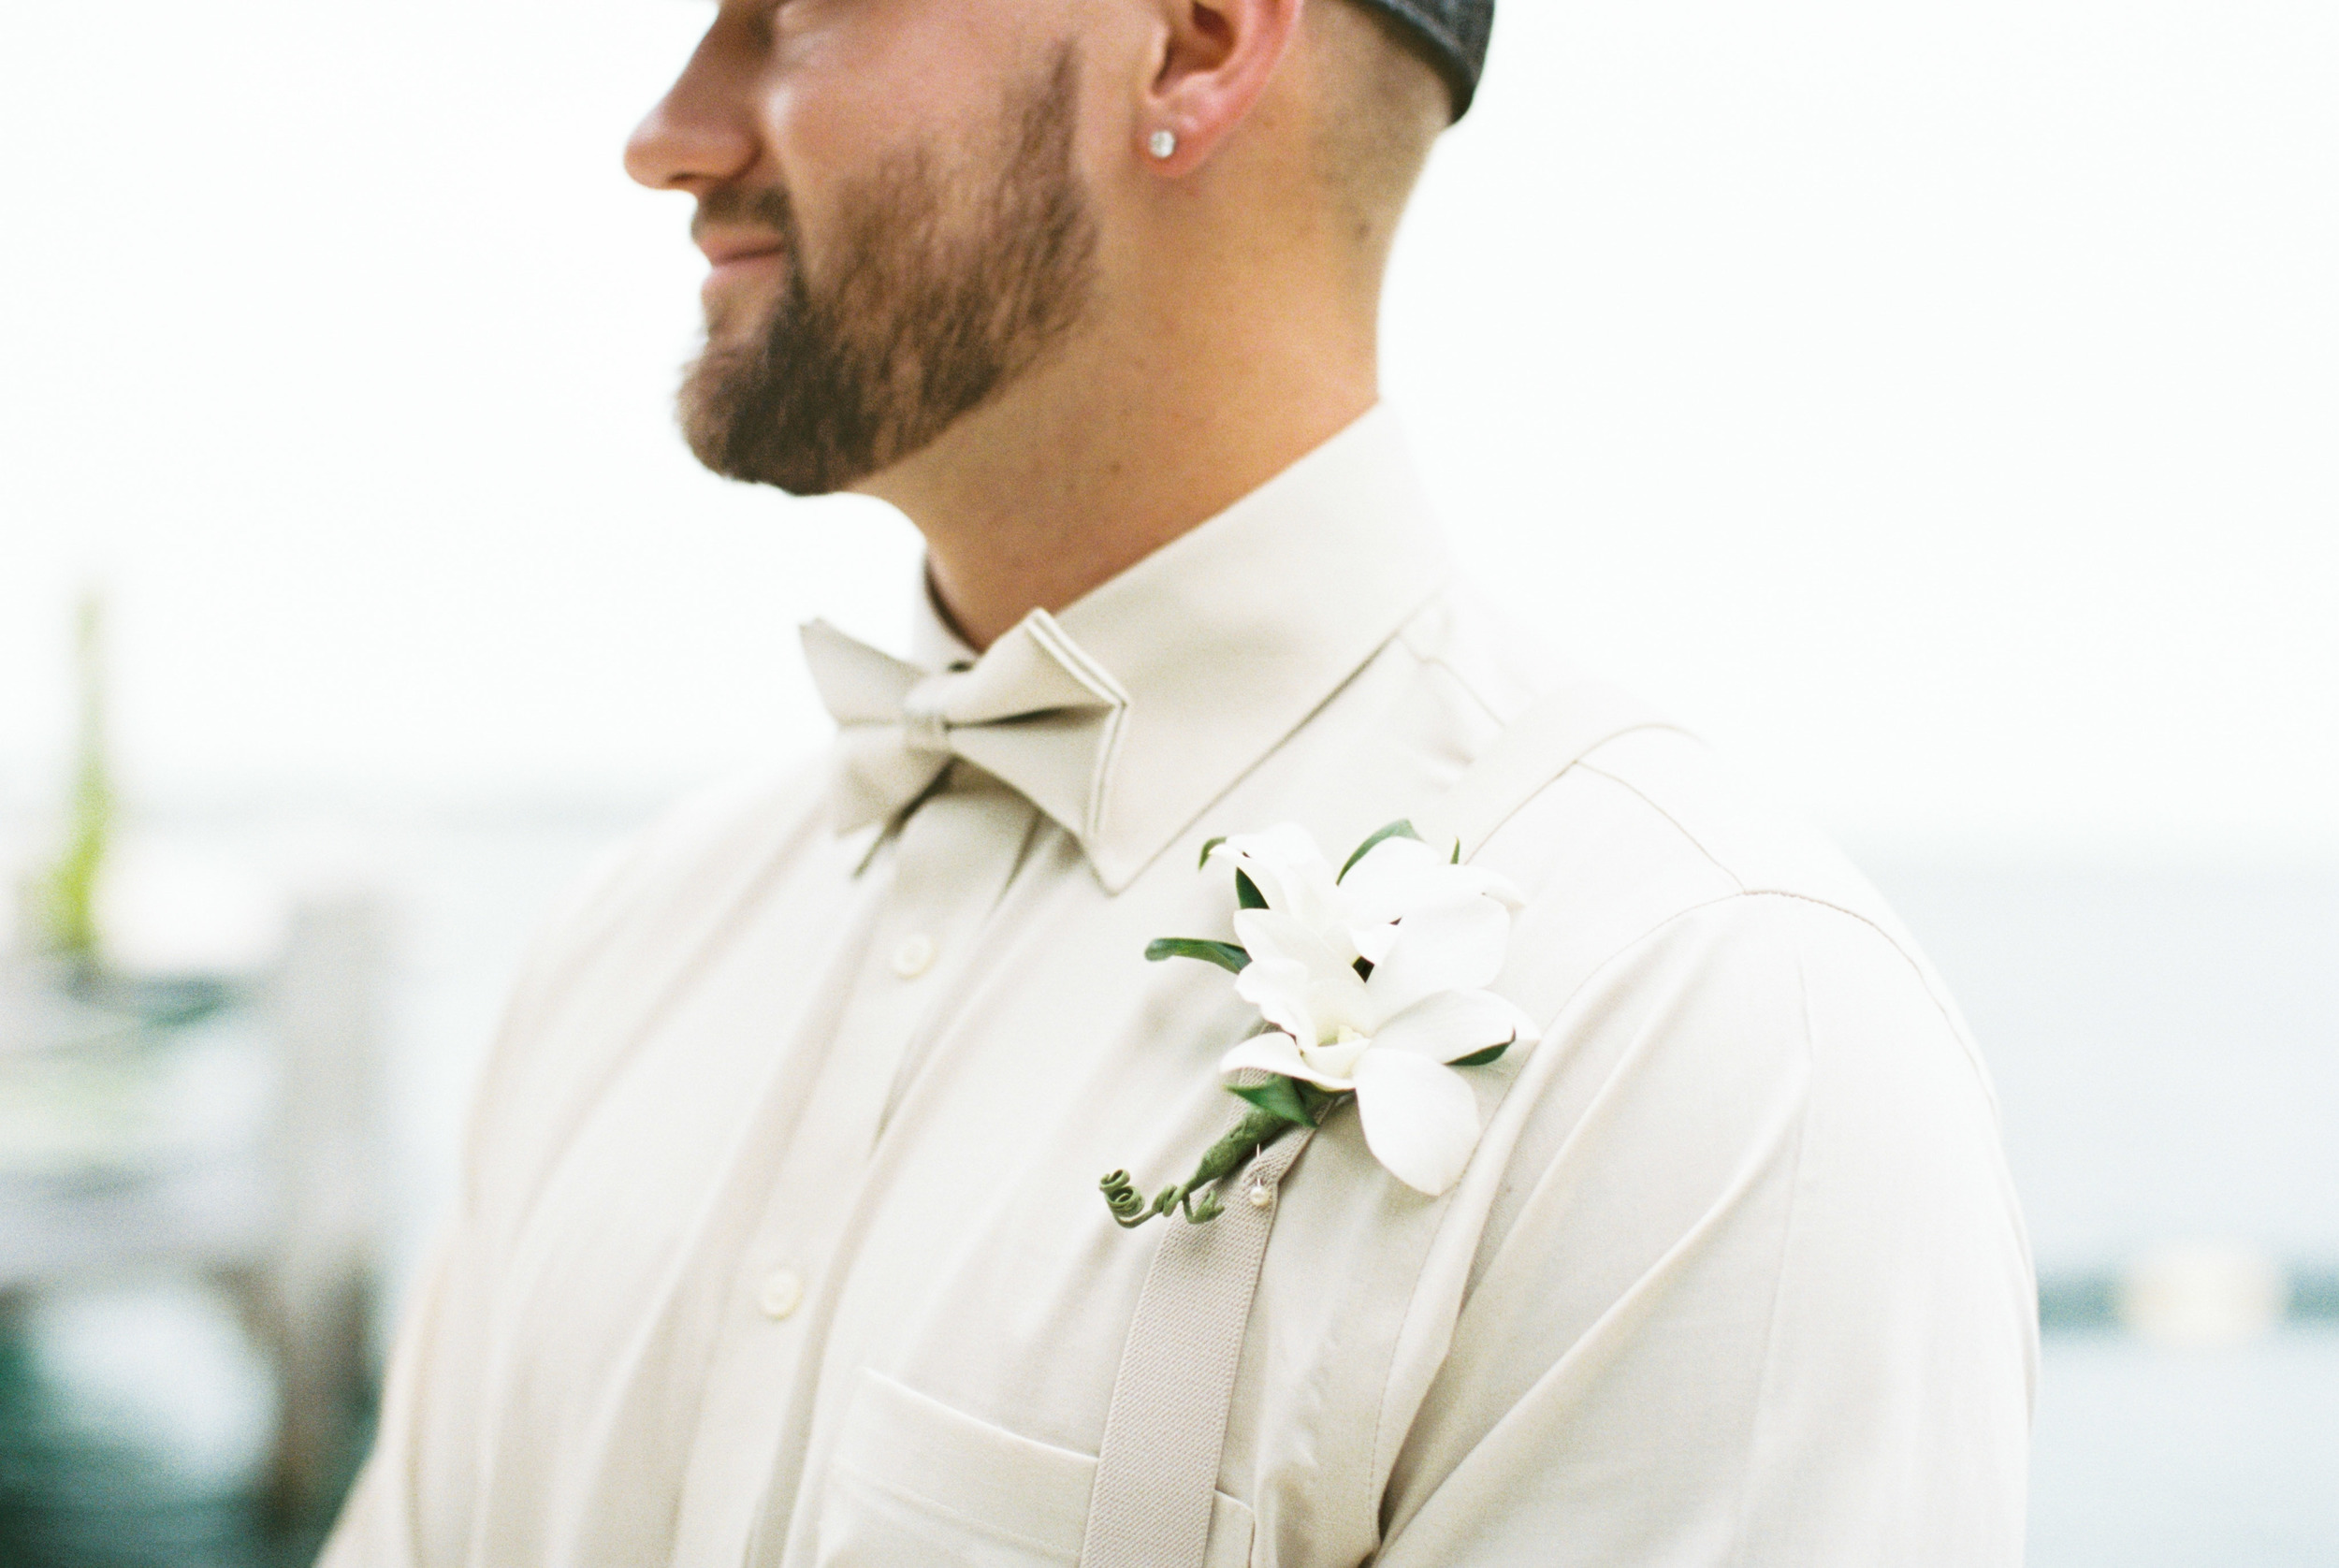 Key West Florida Wedding Film Photographer Photovision Chicago Wedding Photographer 9.jpg